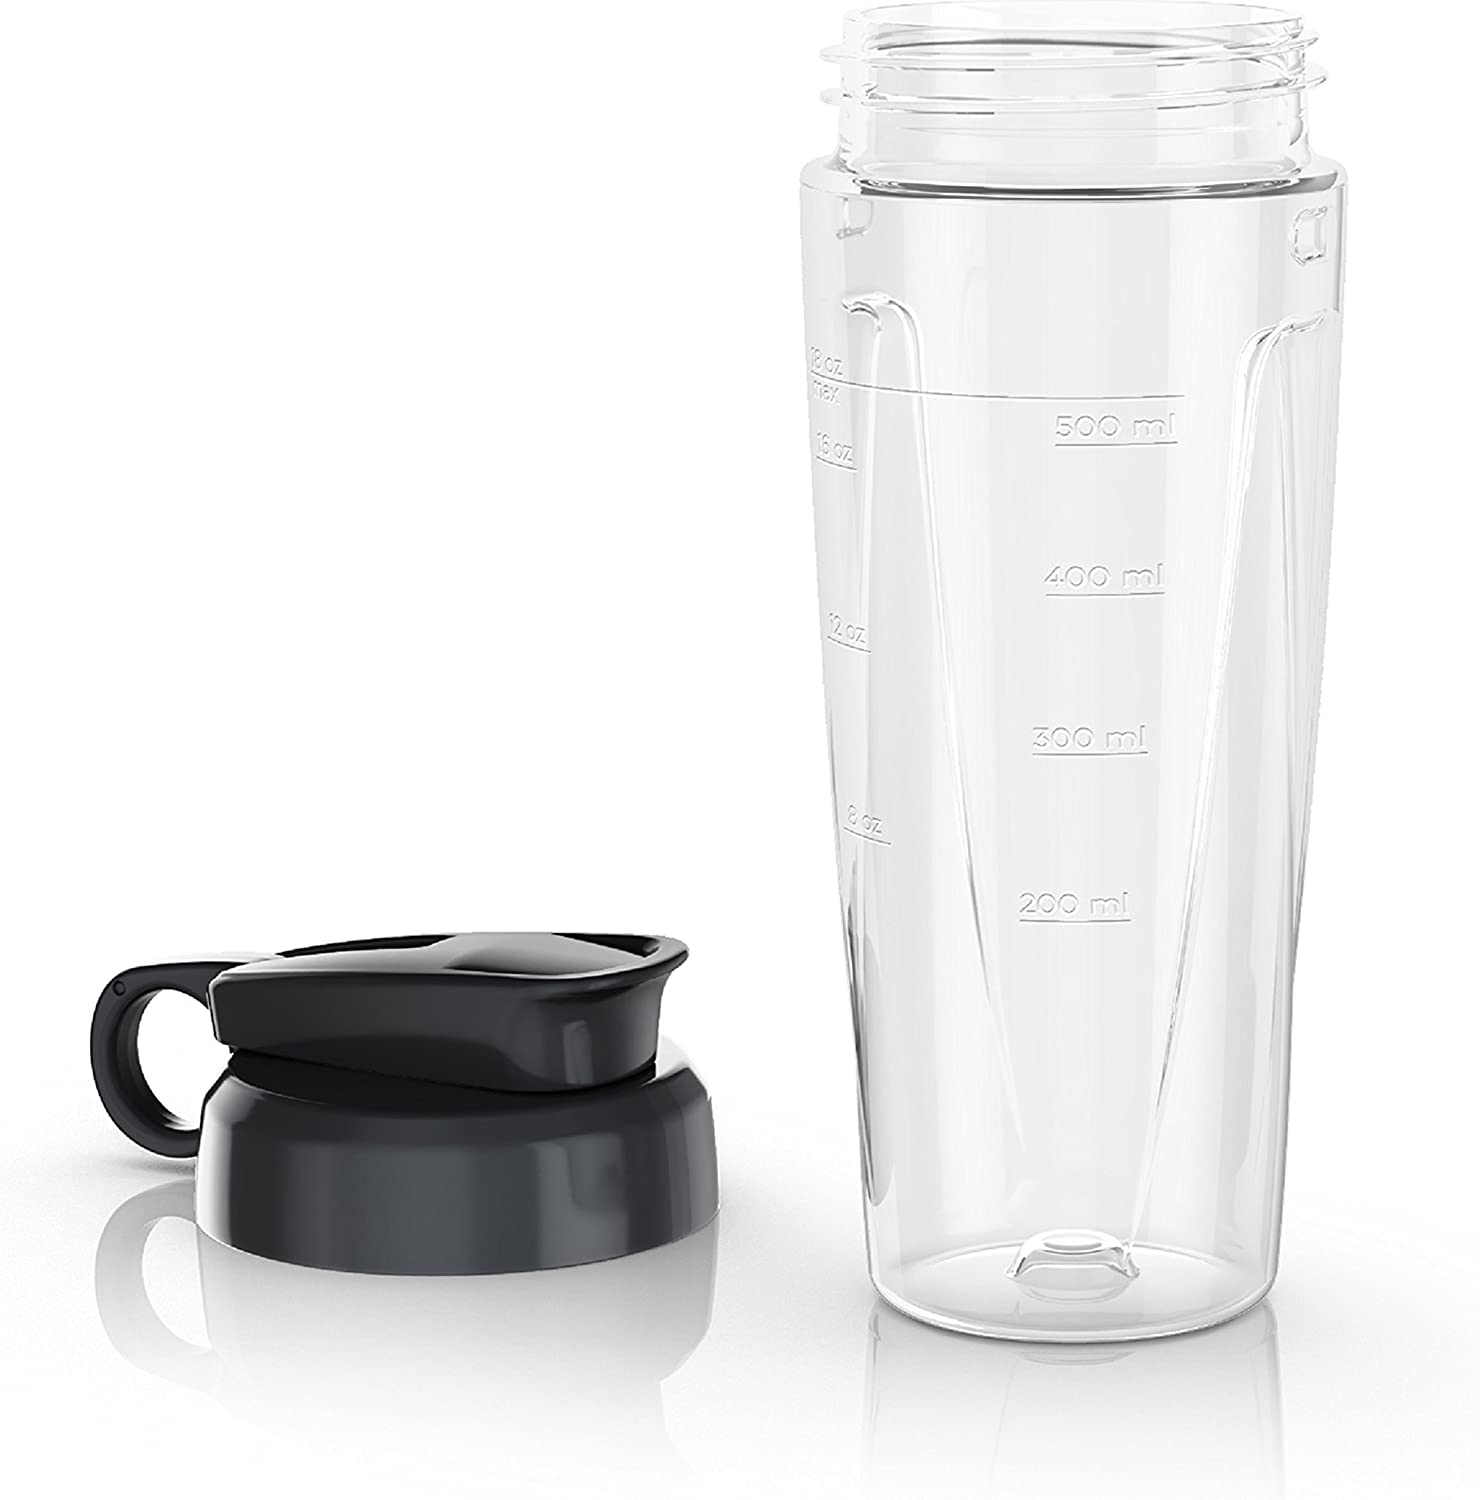 BLACK+DECKER PowerCrush Personal Blender Jar with Travel Lid, Clear, PBJ1650